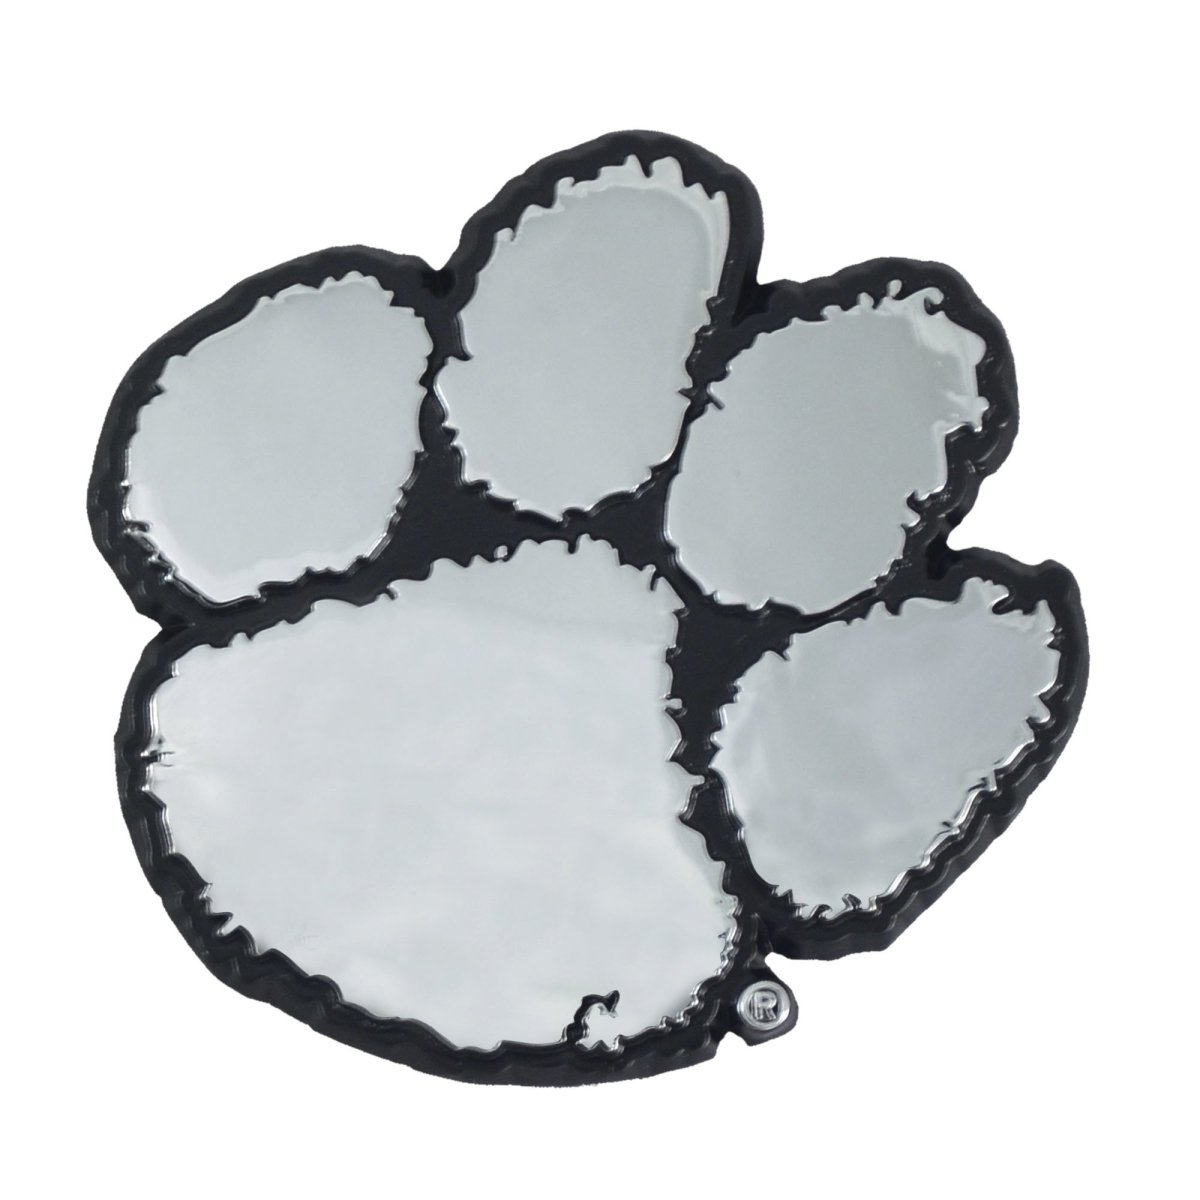 FanMats Clemson Tigers Car Emblem - Mr. Knickerbocker